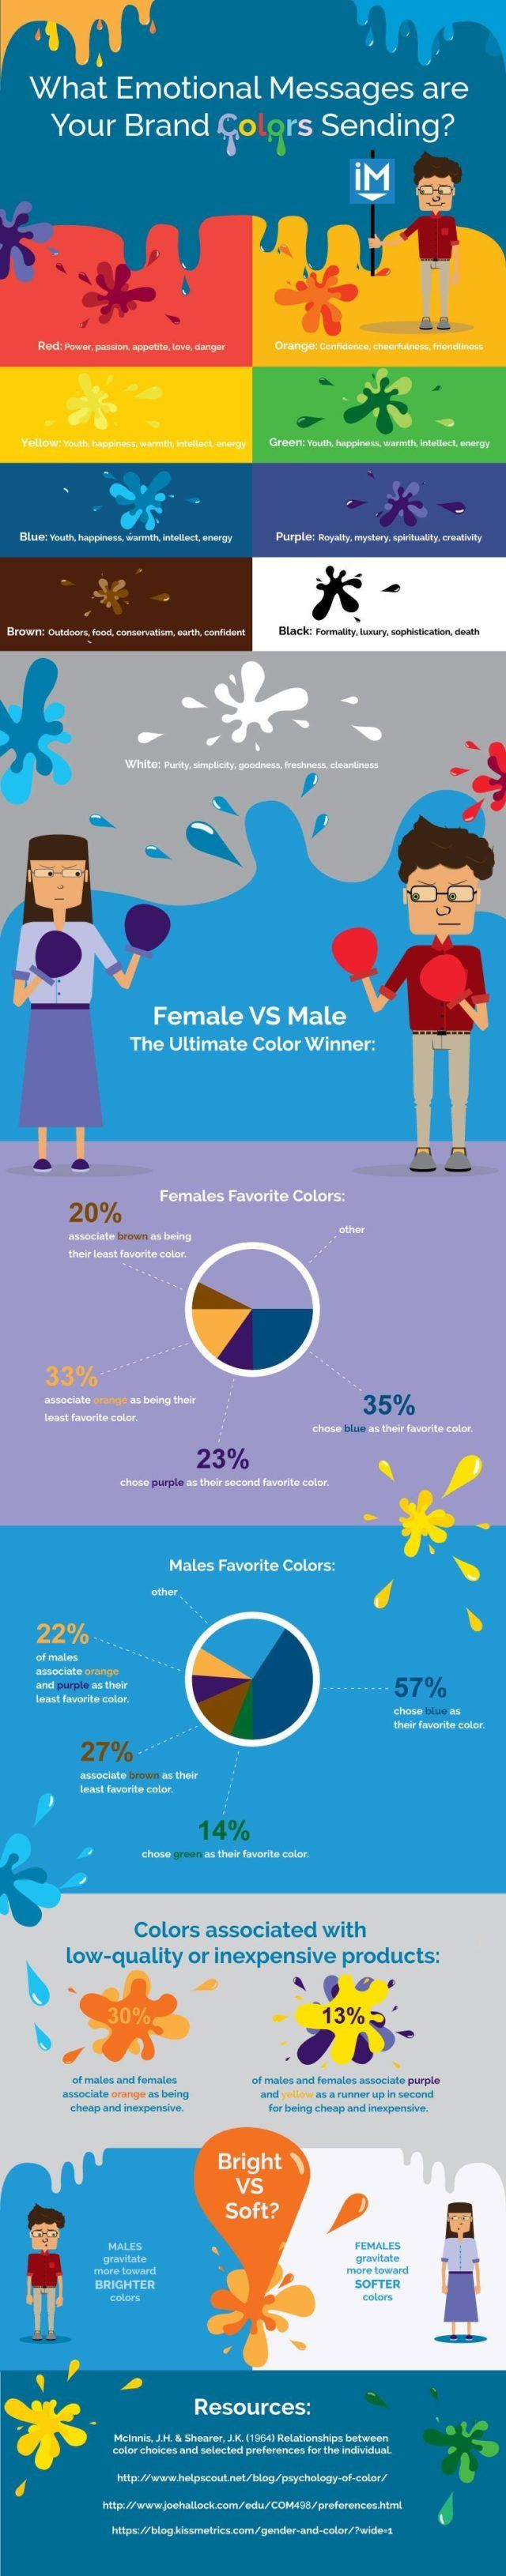 Color Theory and Gender Findings Infographic